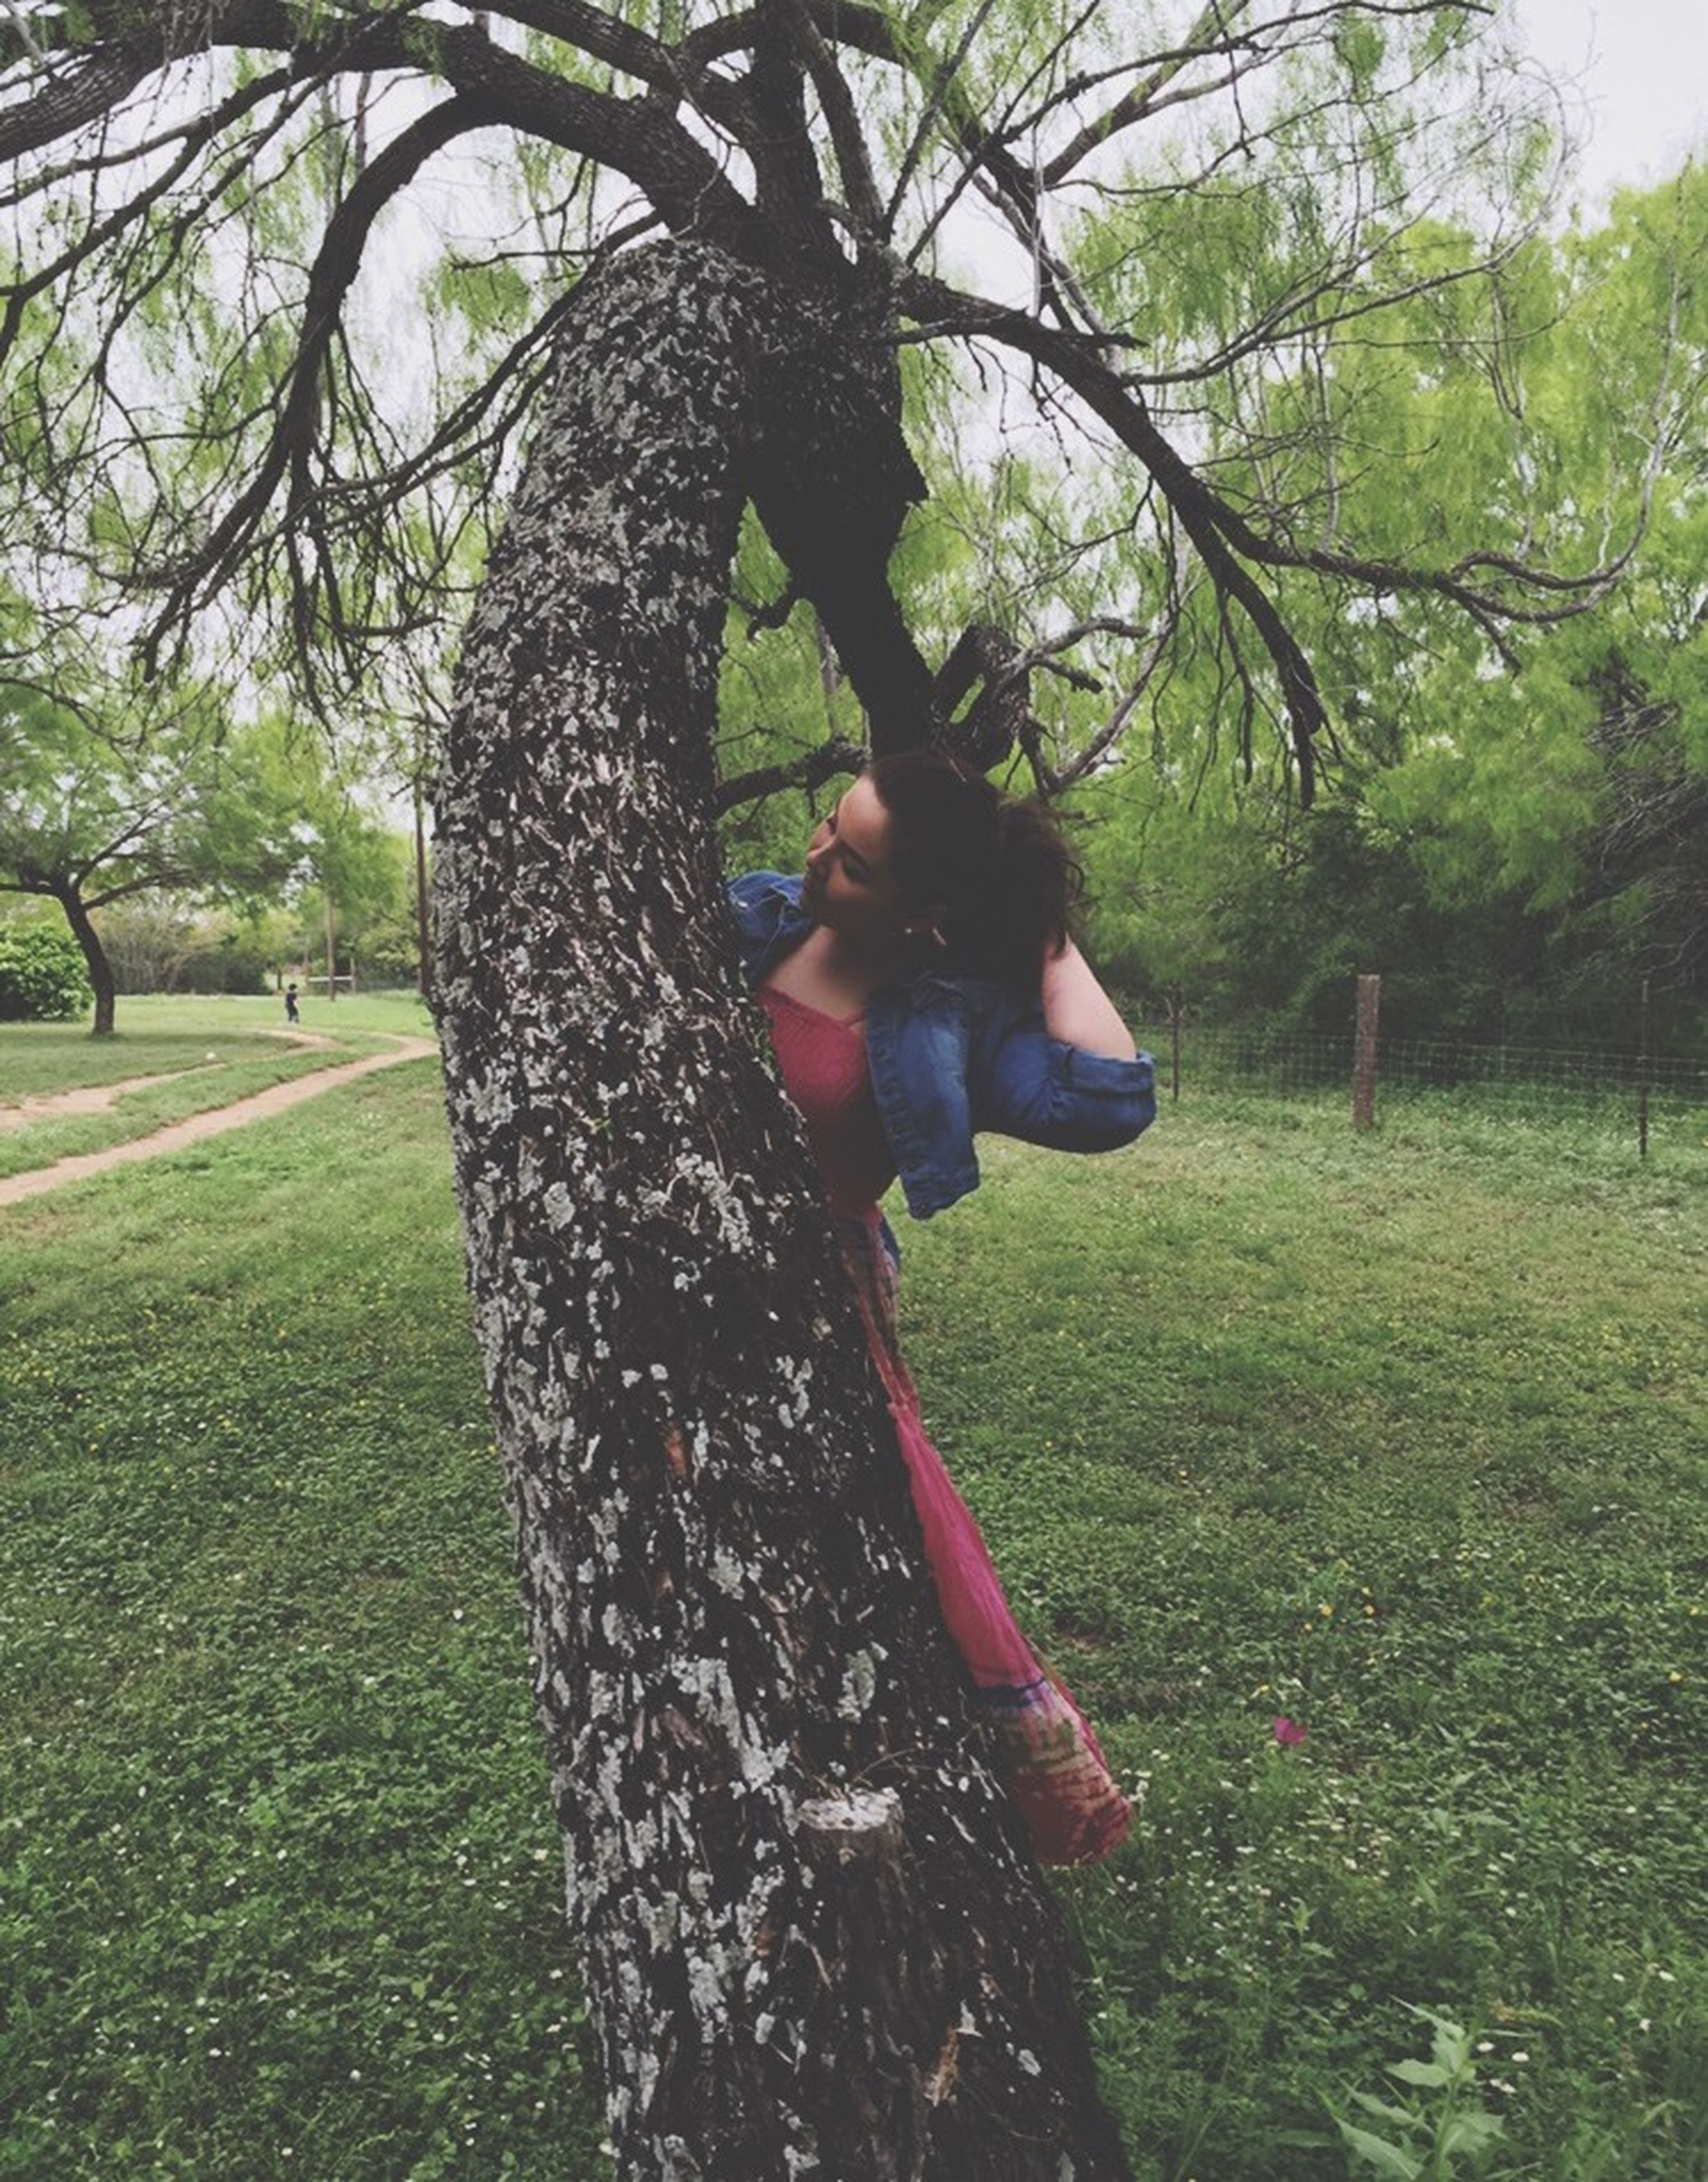 tree, grass, tree trunk, growth, field, park - man made space, green color, sunlight, grassy, nature, day, outdoors, branch, tranquility, park, focus on foreground, close-up, food and drink, lawn, freshness